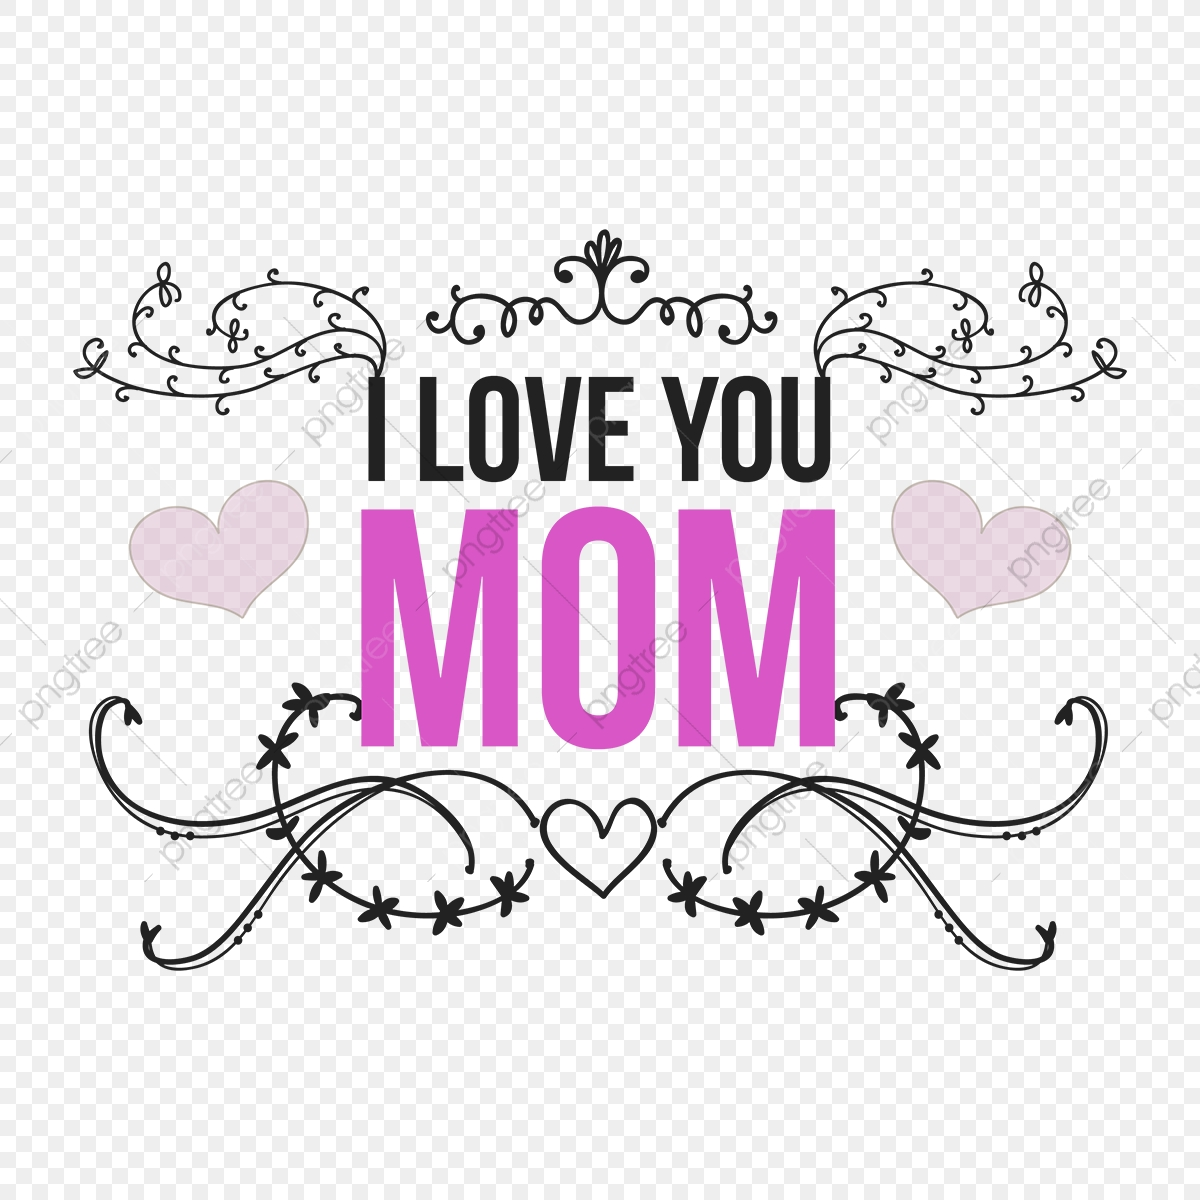 The Word Mother | Clipart Panda - Free Clipart Images | Love you mom, I love  you mom, Mom clipart